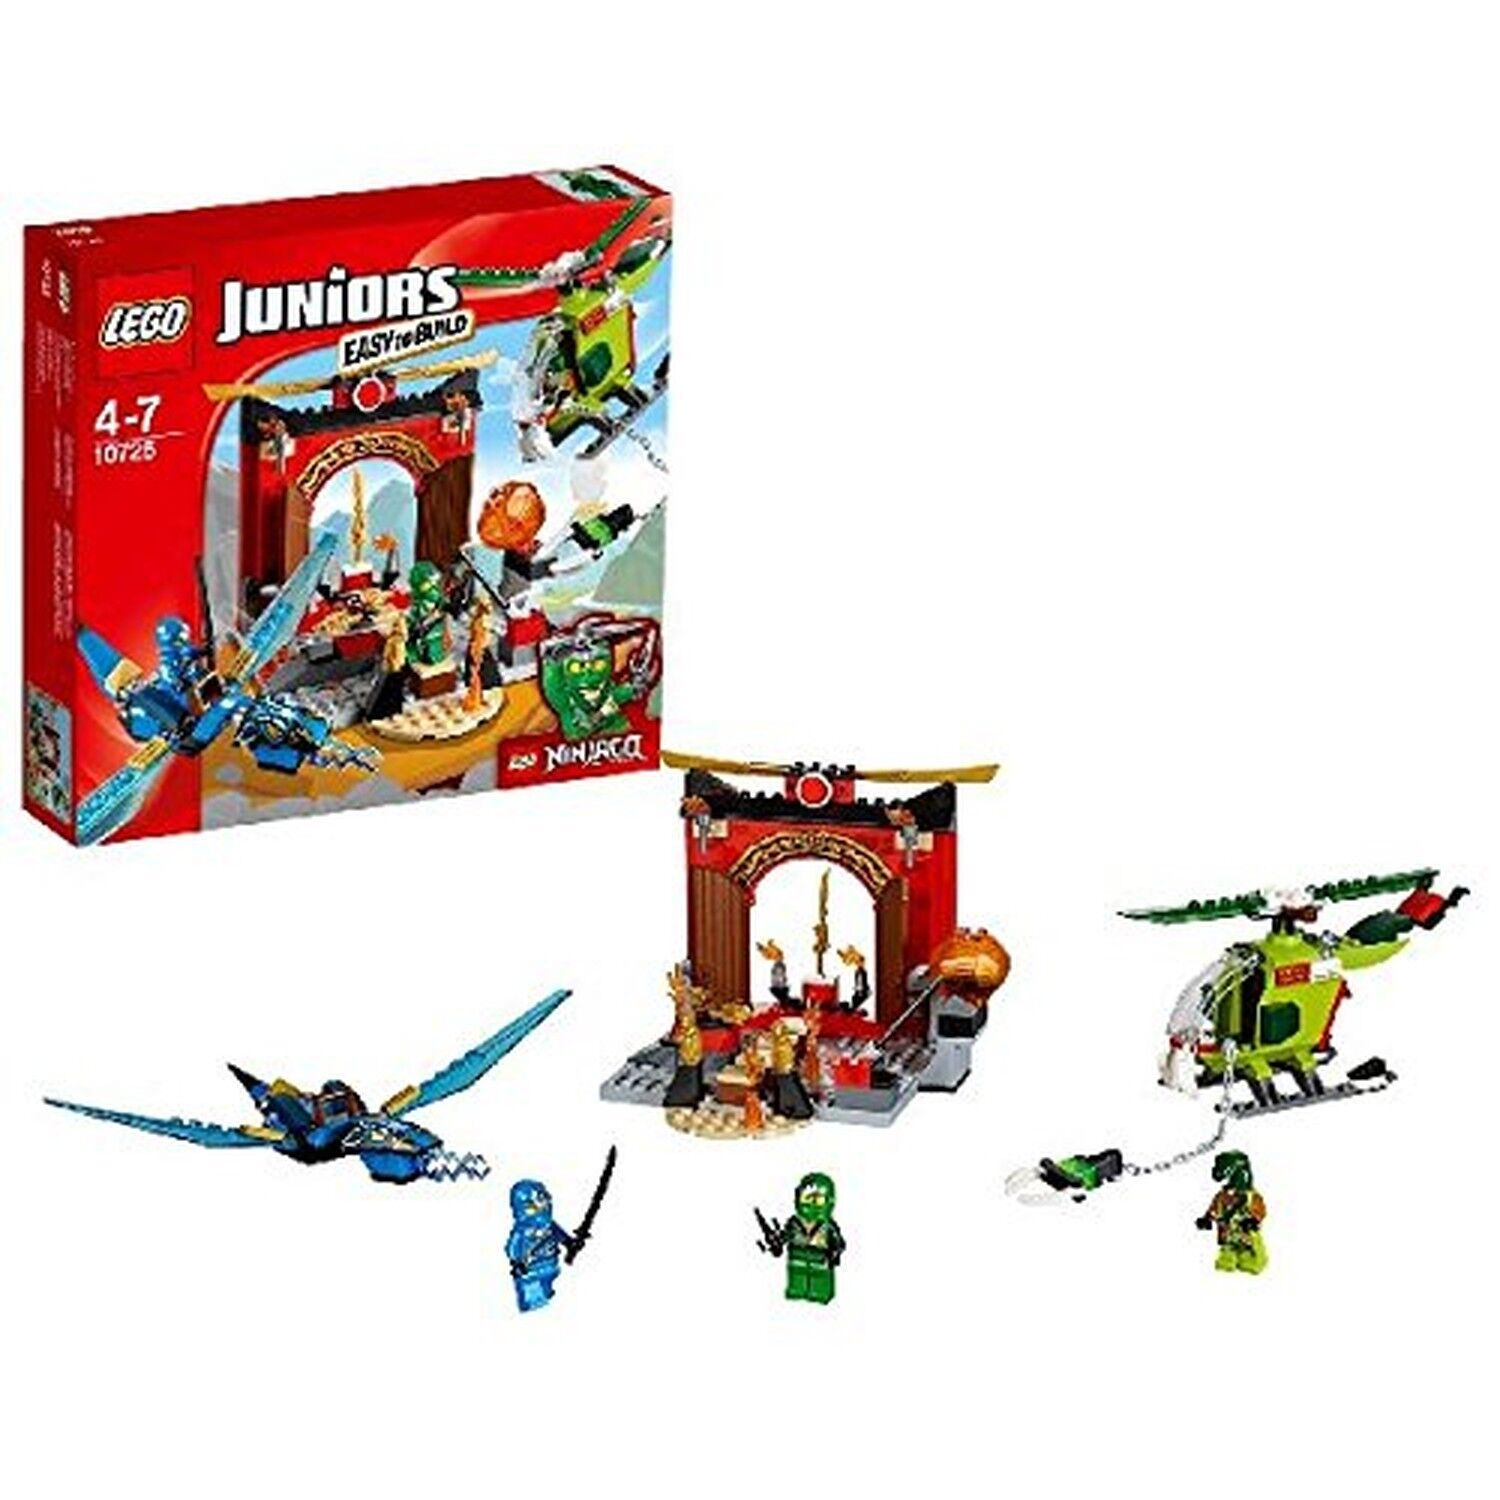 LEGO 10725 Juniors LOST TEMPLE Playset